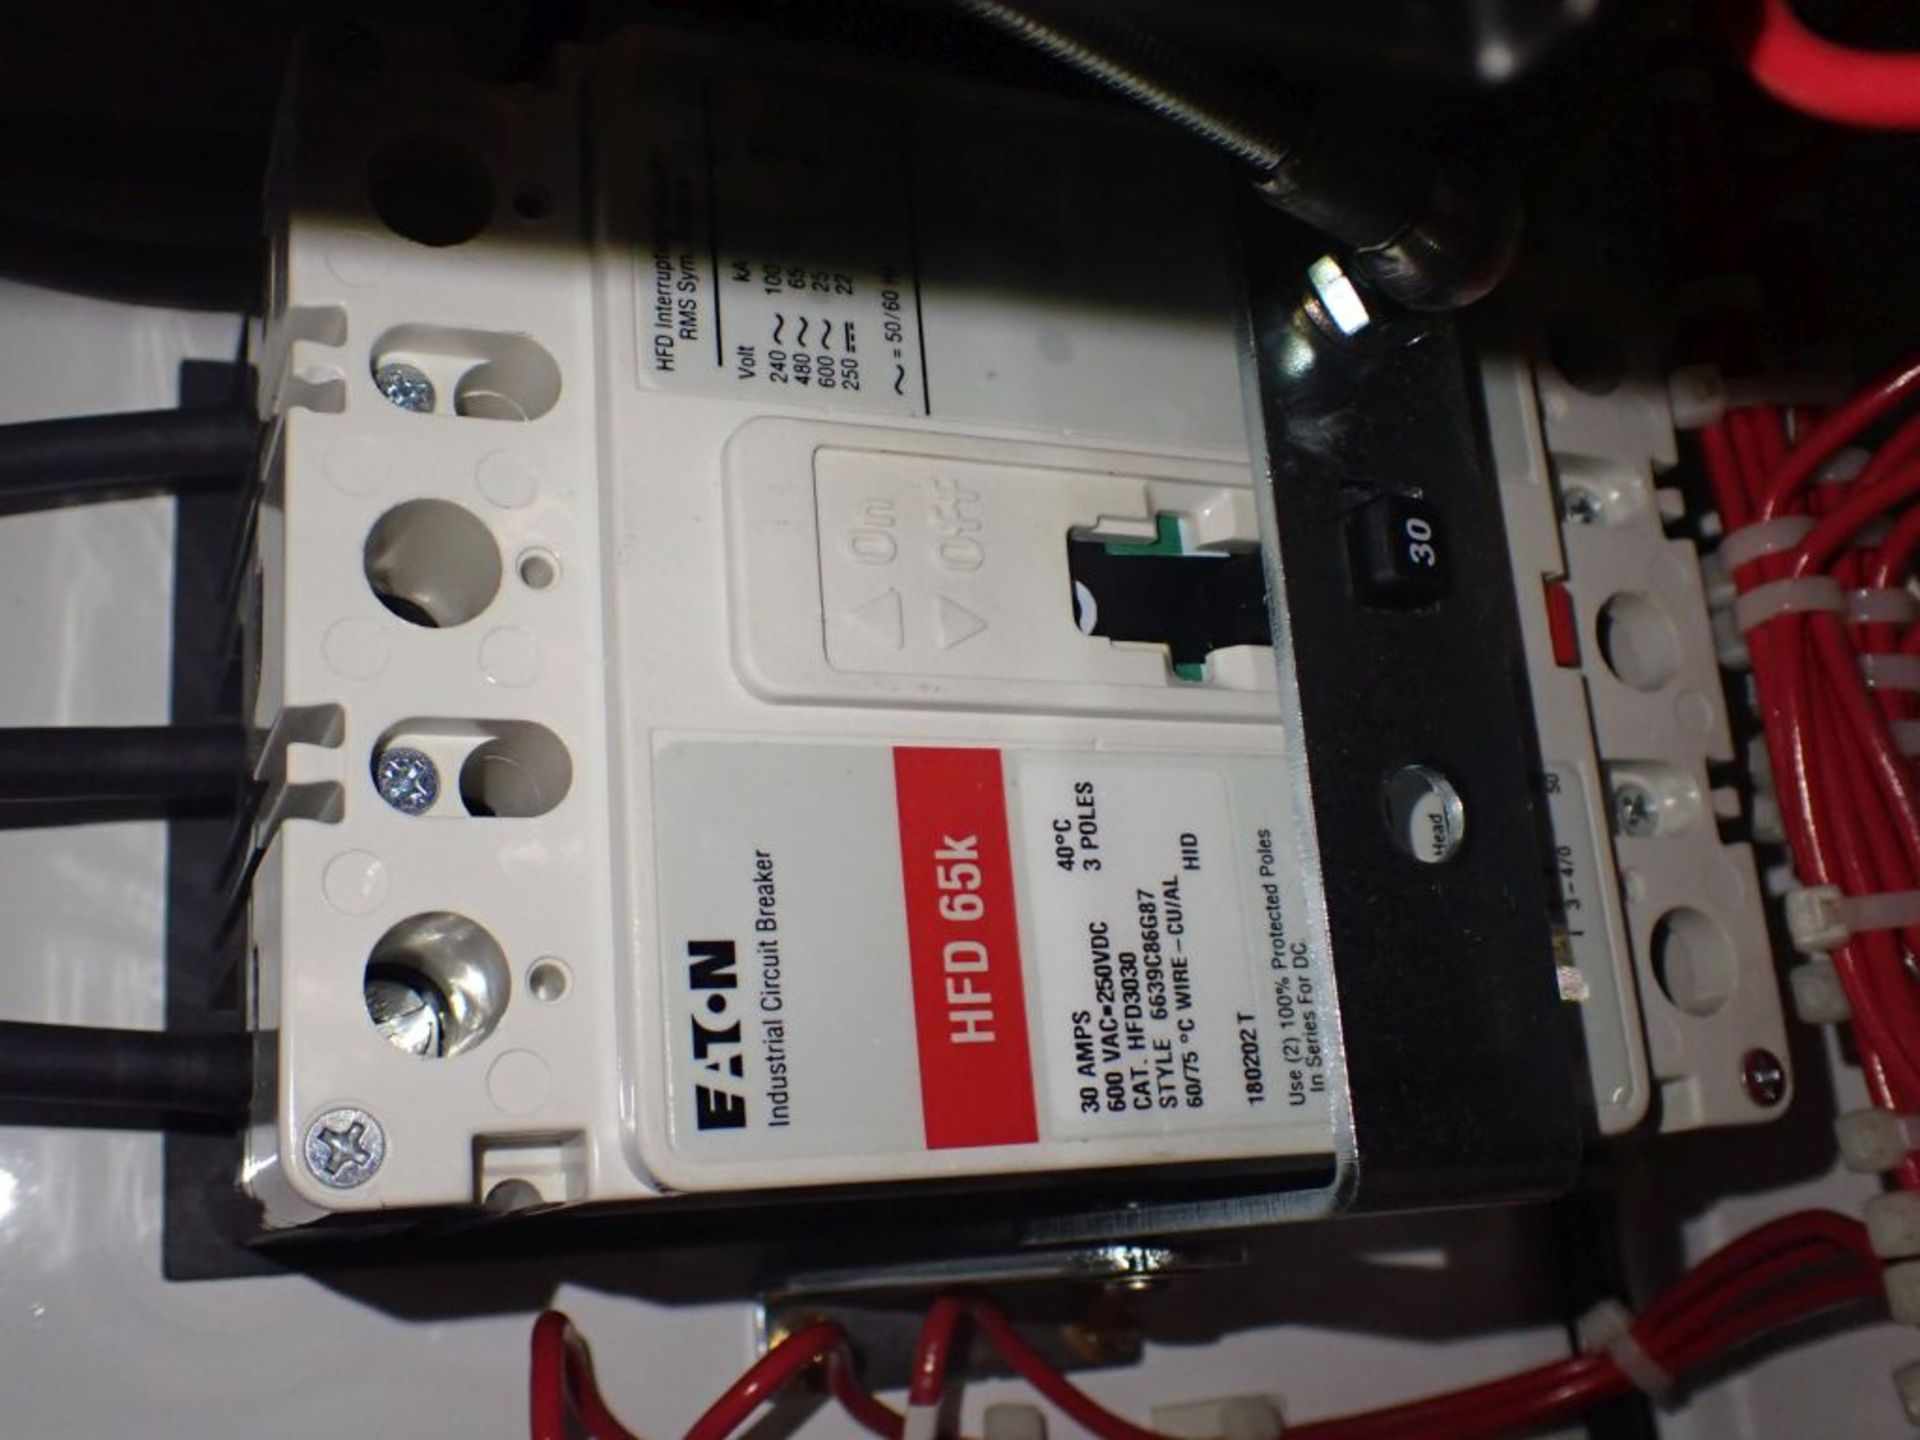 Eaton Freedom 2100 Series Motor Control Center | (2) F208-30A; (1) F208-40A; (1) FDRB-50A; (2) - Image 8 of 37